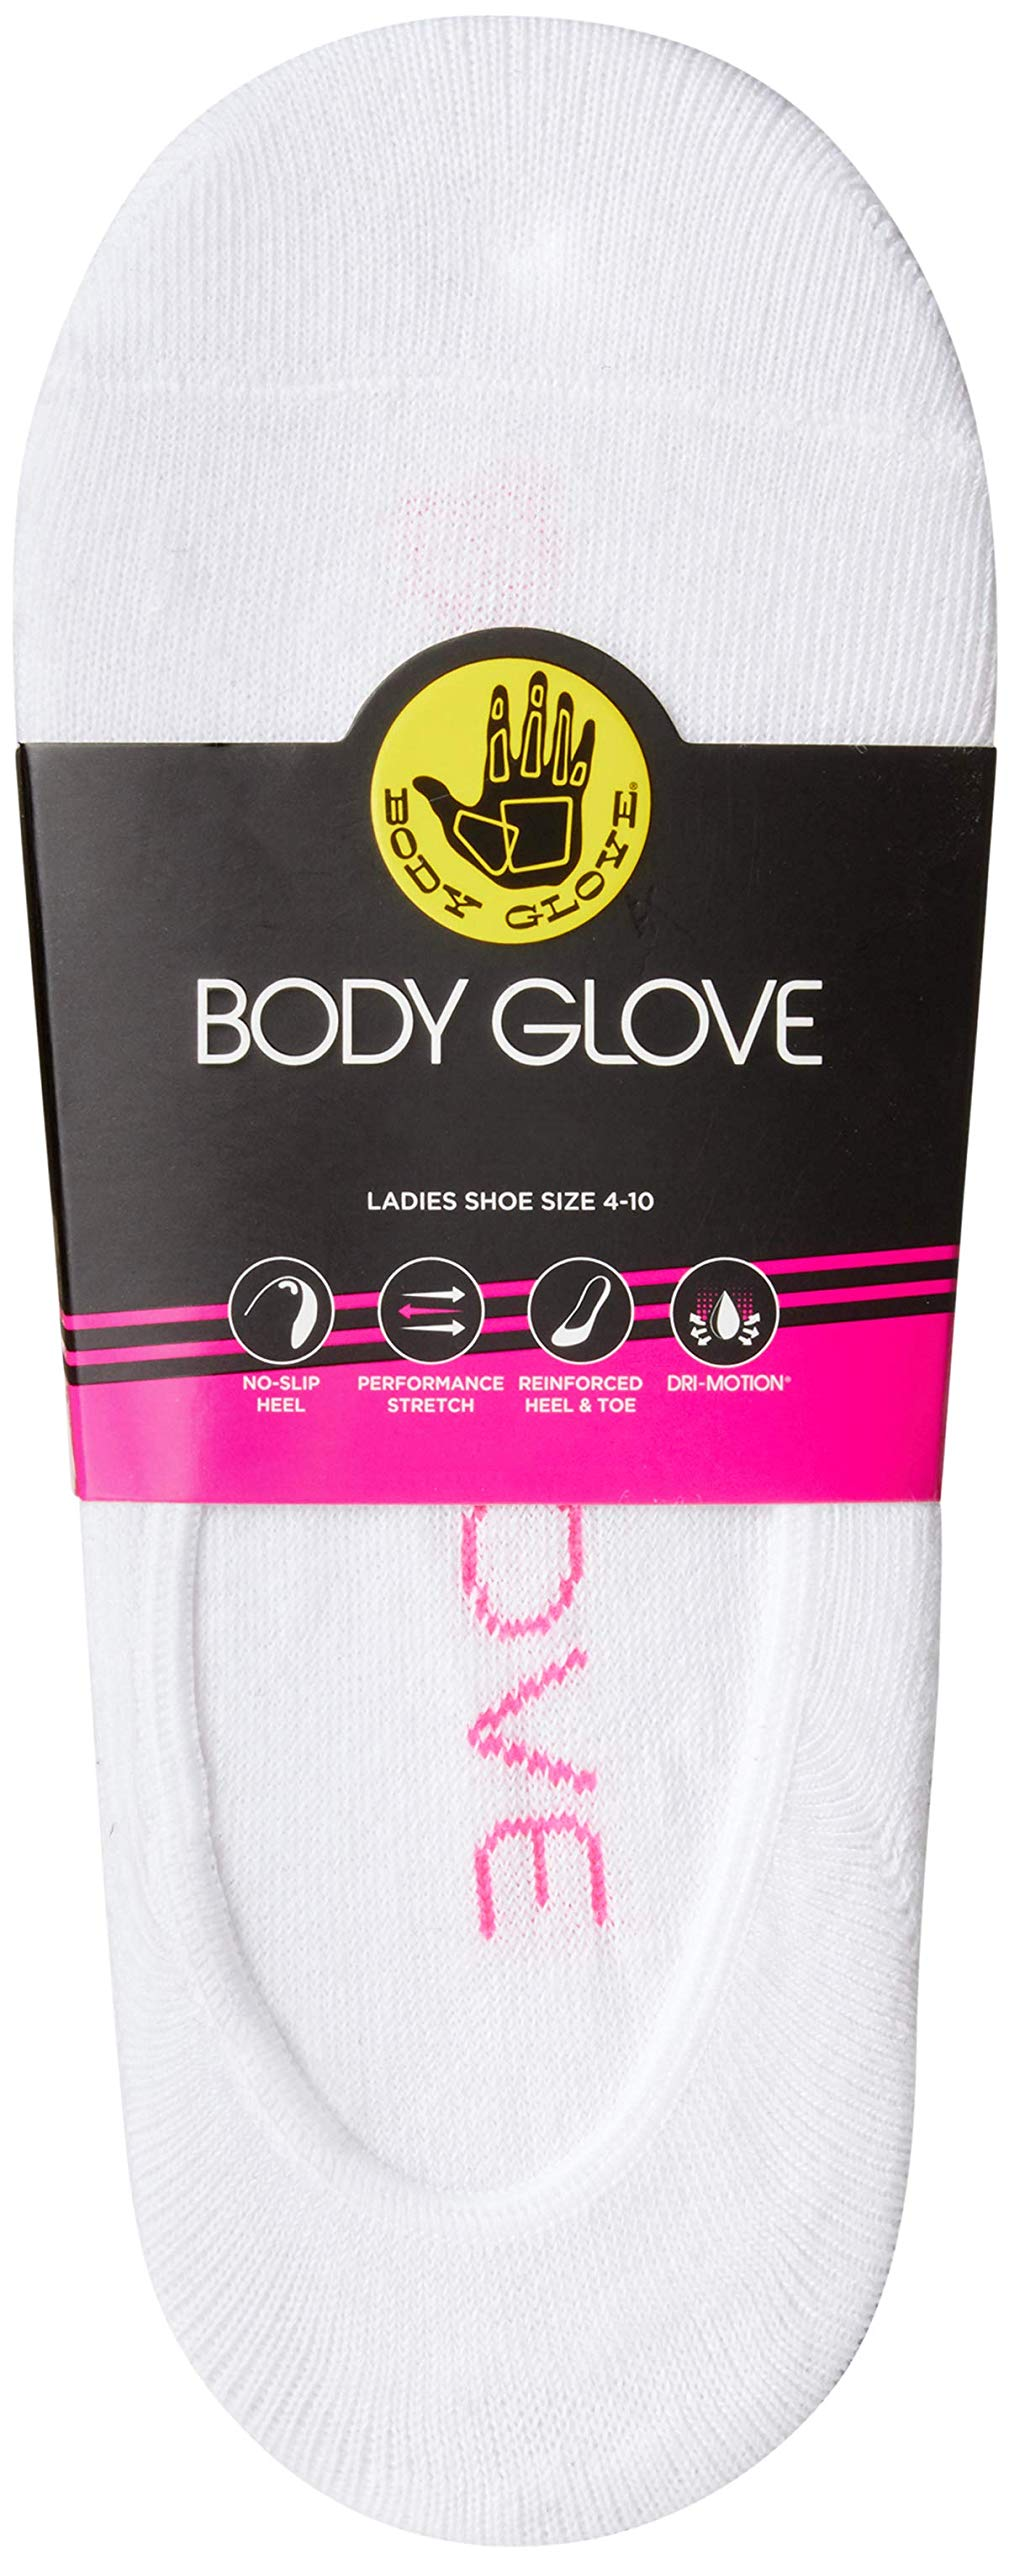 Body Glove Women's No Show Non-Slip Grip Liner Socks With Reinforced Heel And Toe (6 Pack)